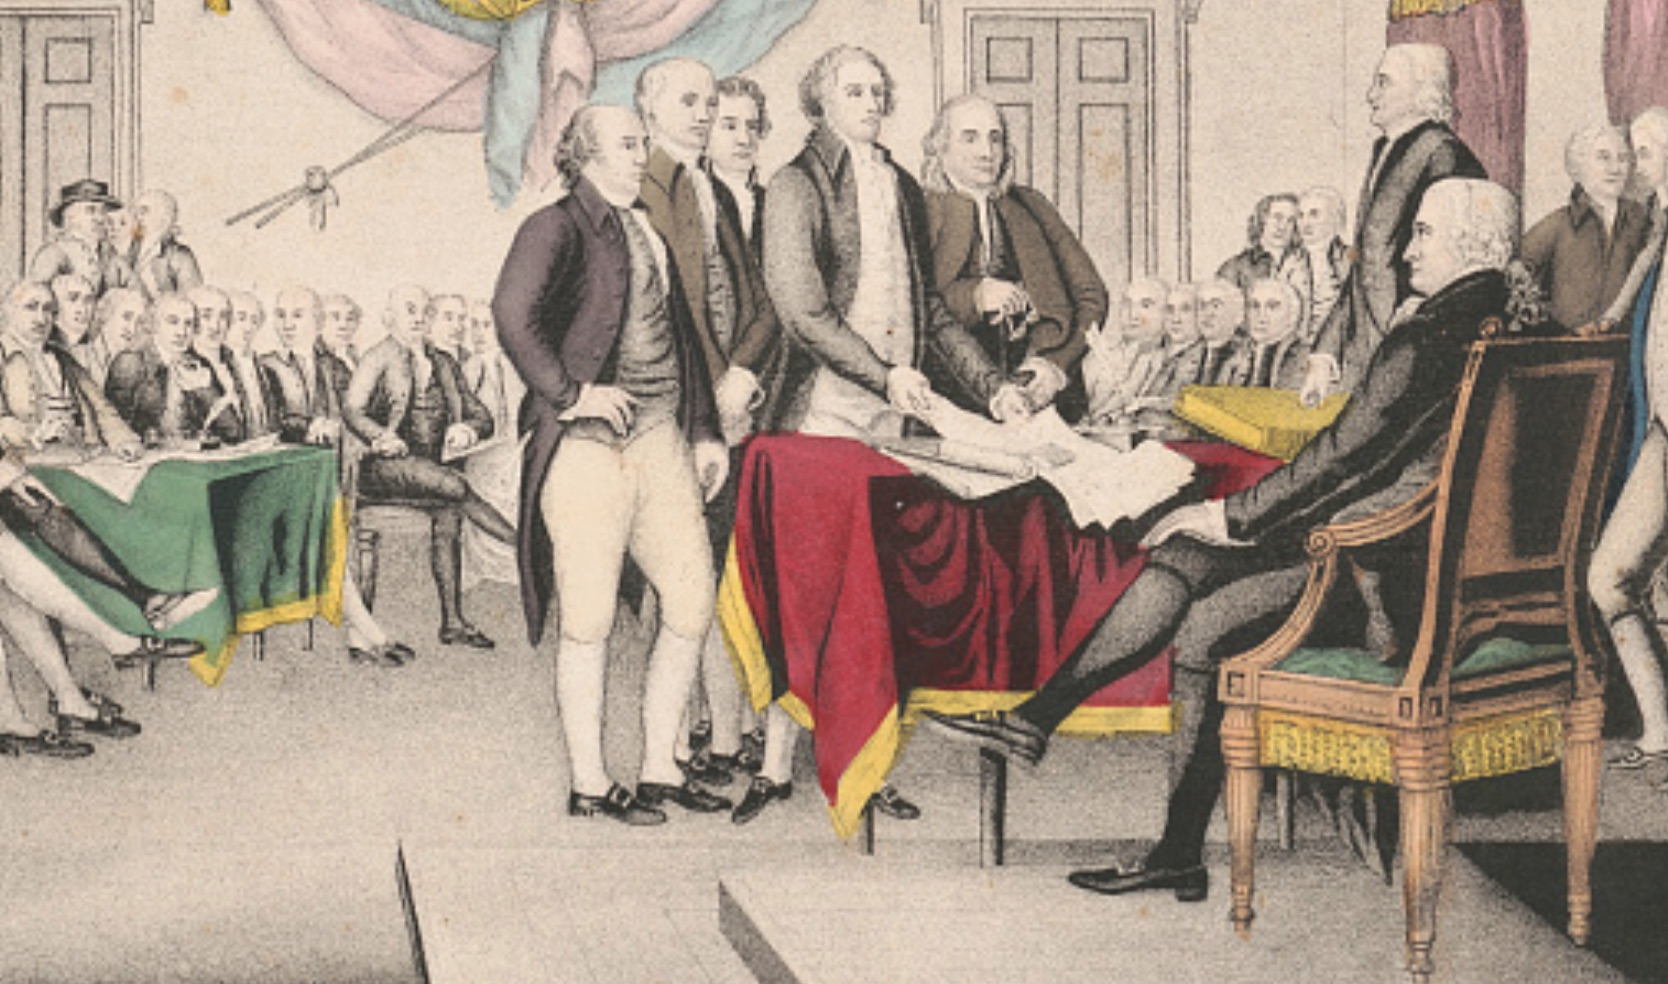 The Declaration of Independence is a symbol of our Professional Development program